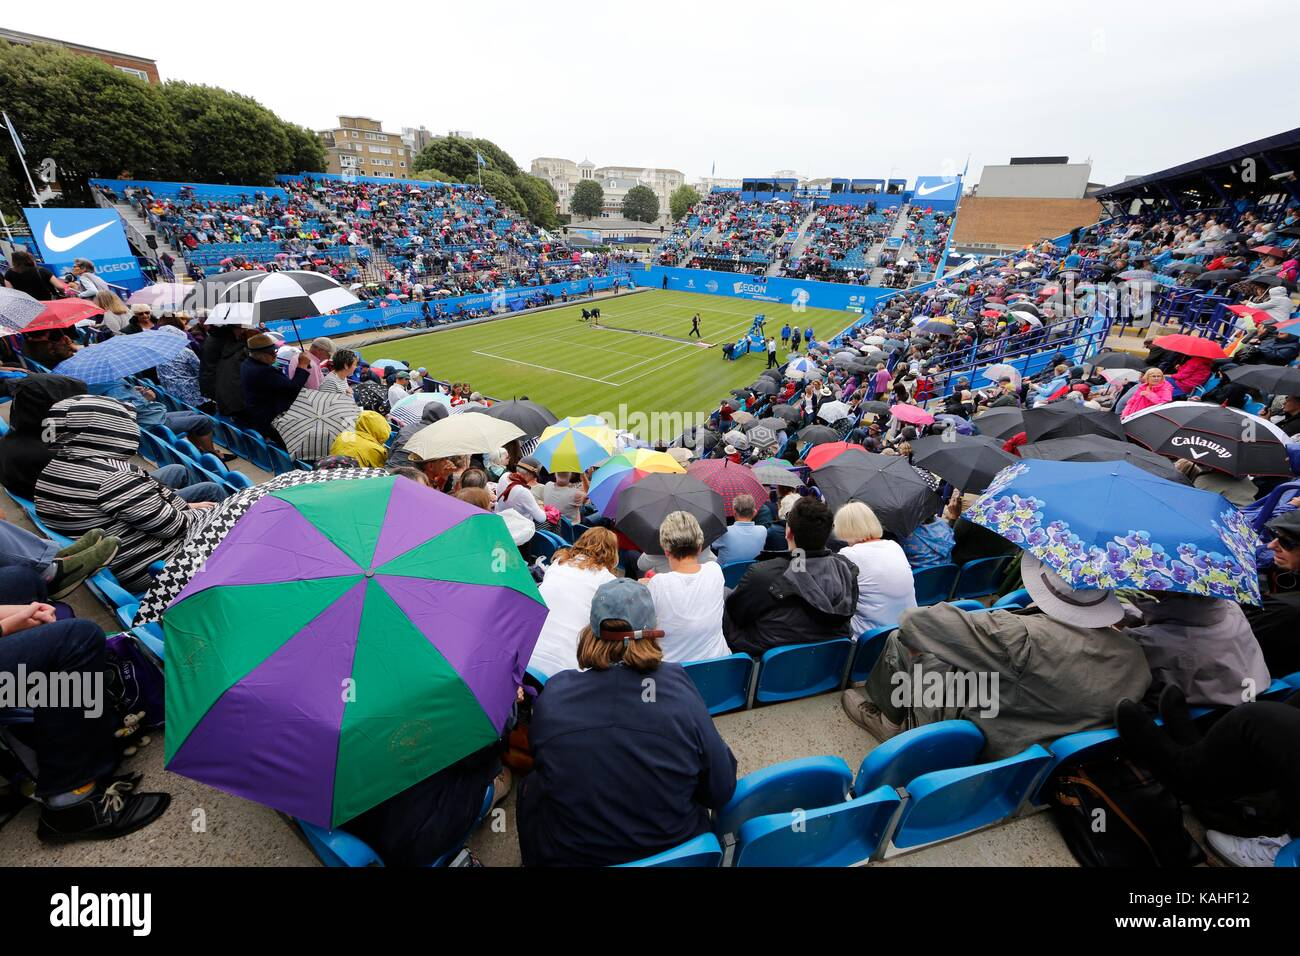 Tennis fans on Court 1 shelter under Umbrellas on day five of the Aegon International at Devonshire Park, Eastbourne. - Stock Image